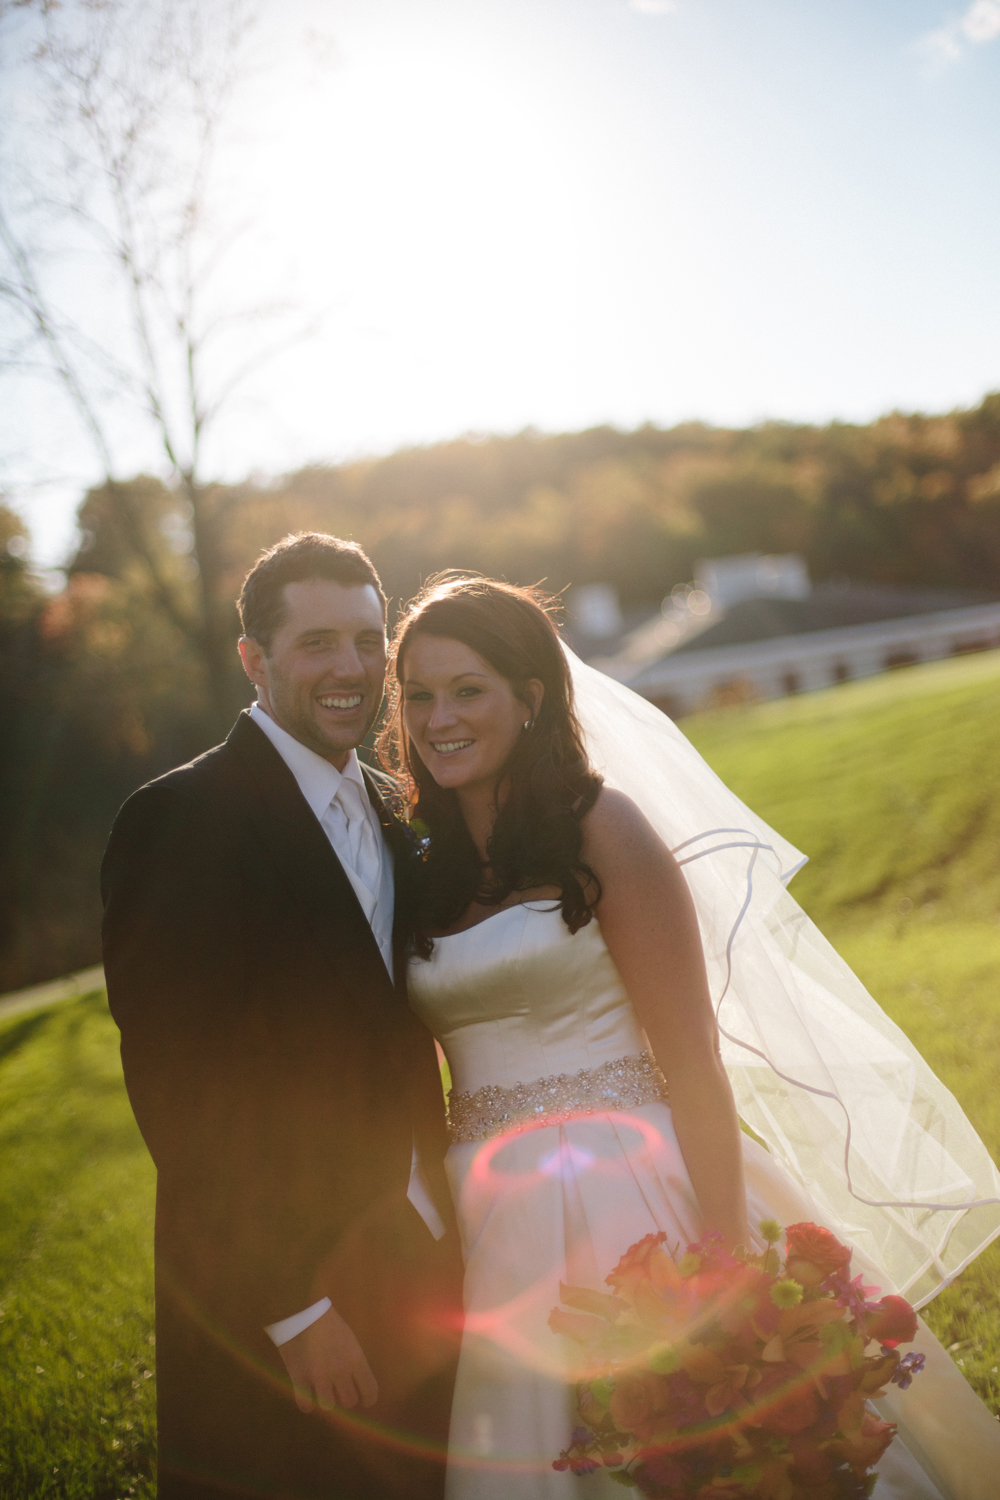 Erin and Brad - Sneak Preview | Dmitriy Babichenko, Pittsburgh Wedding Photographer